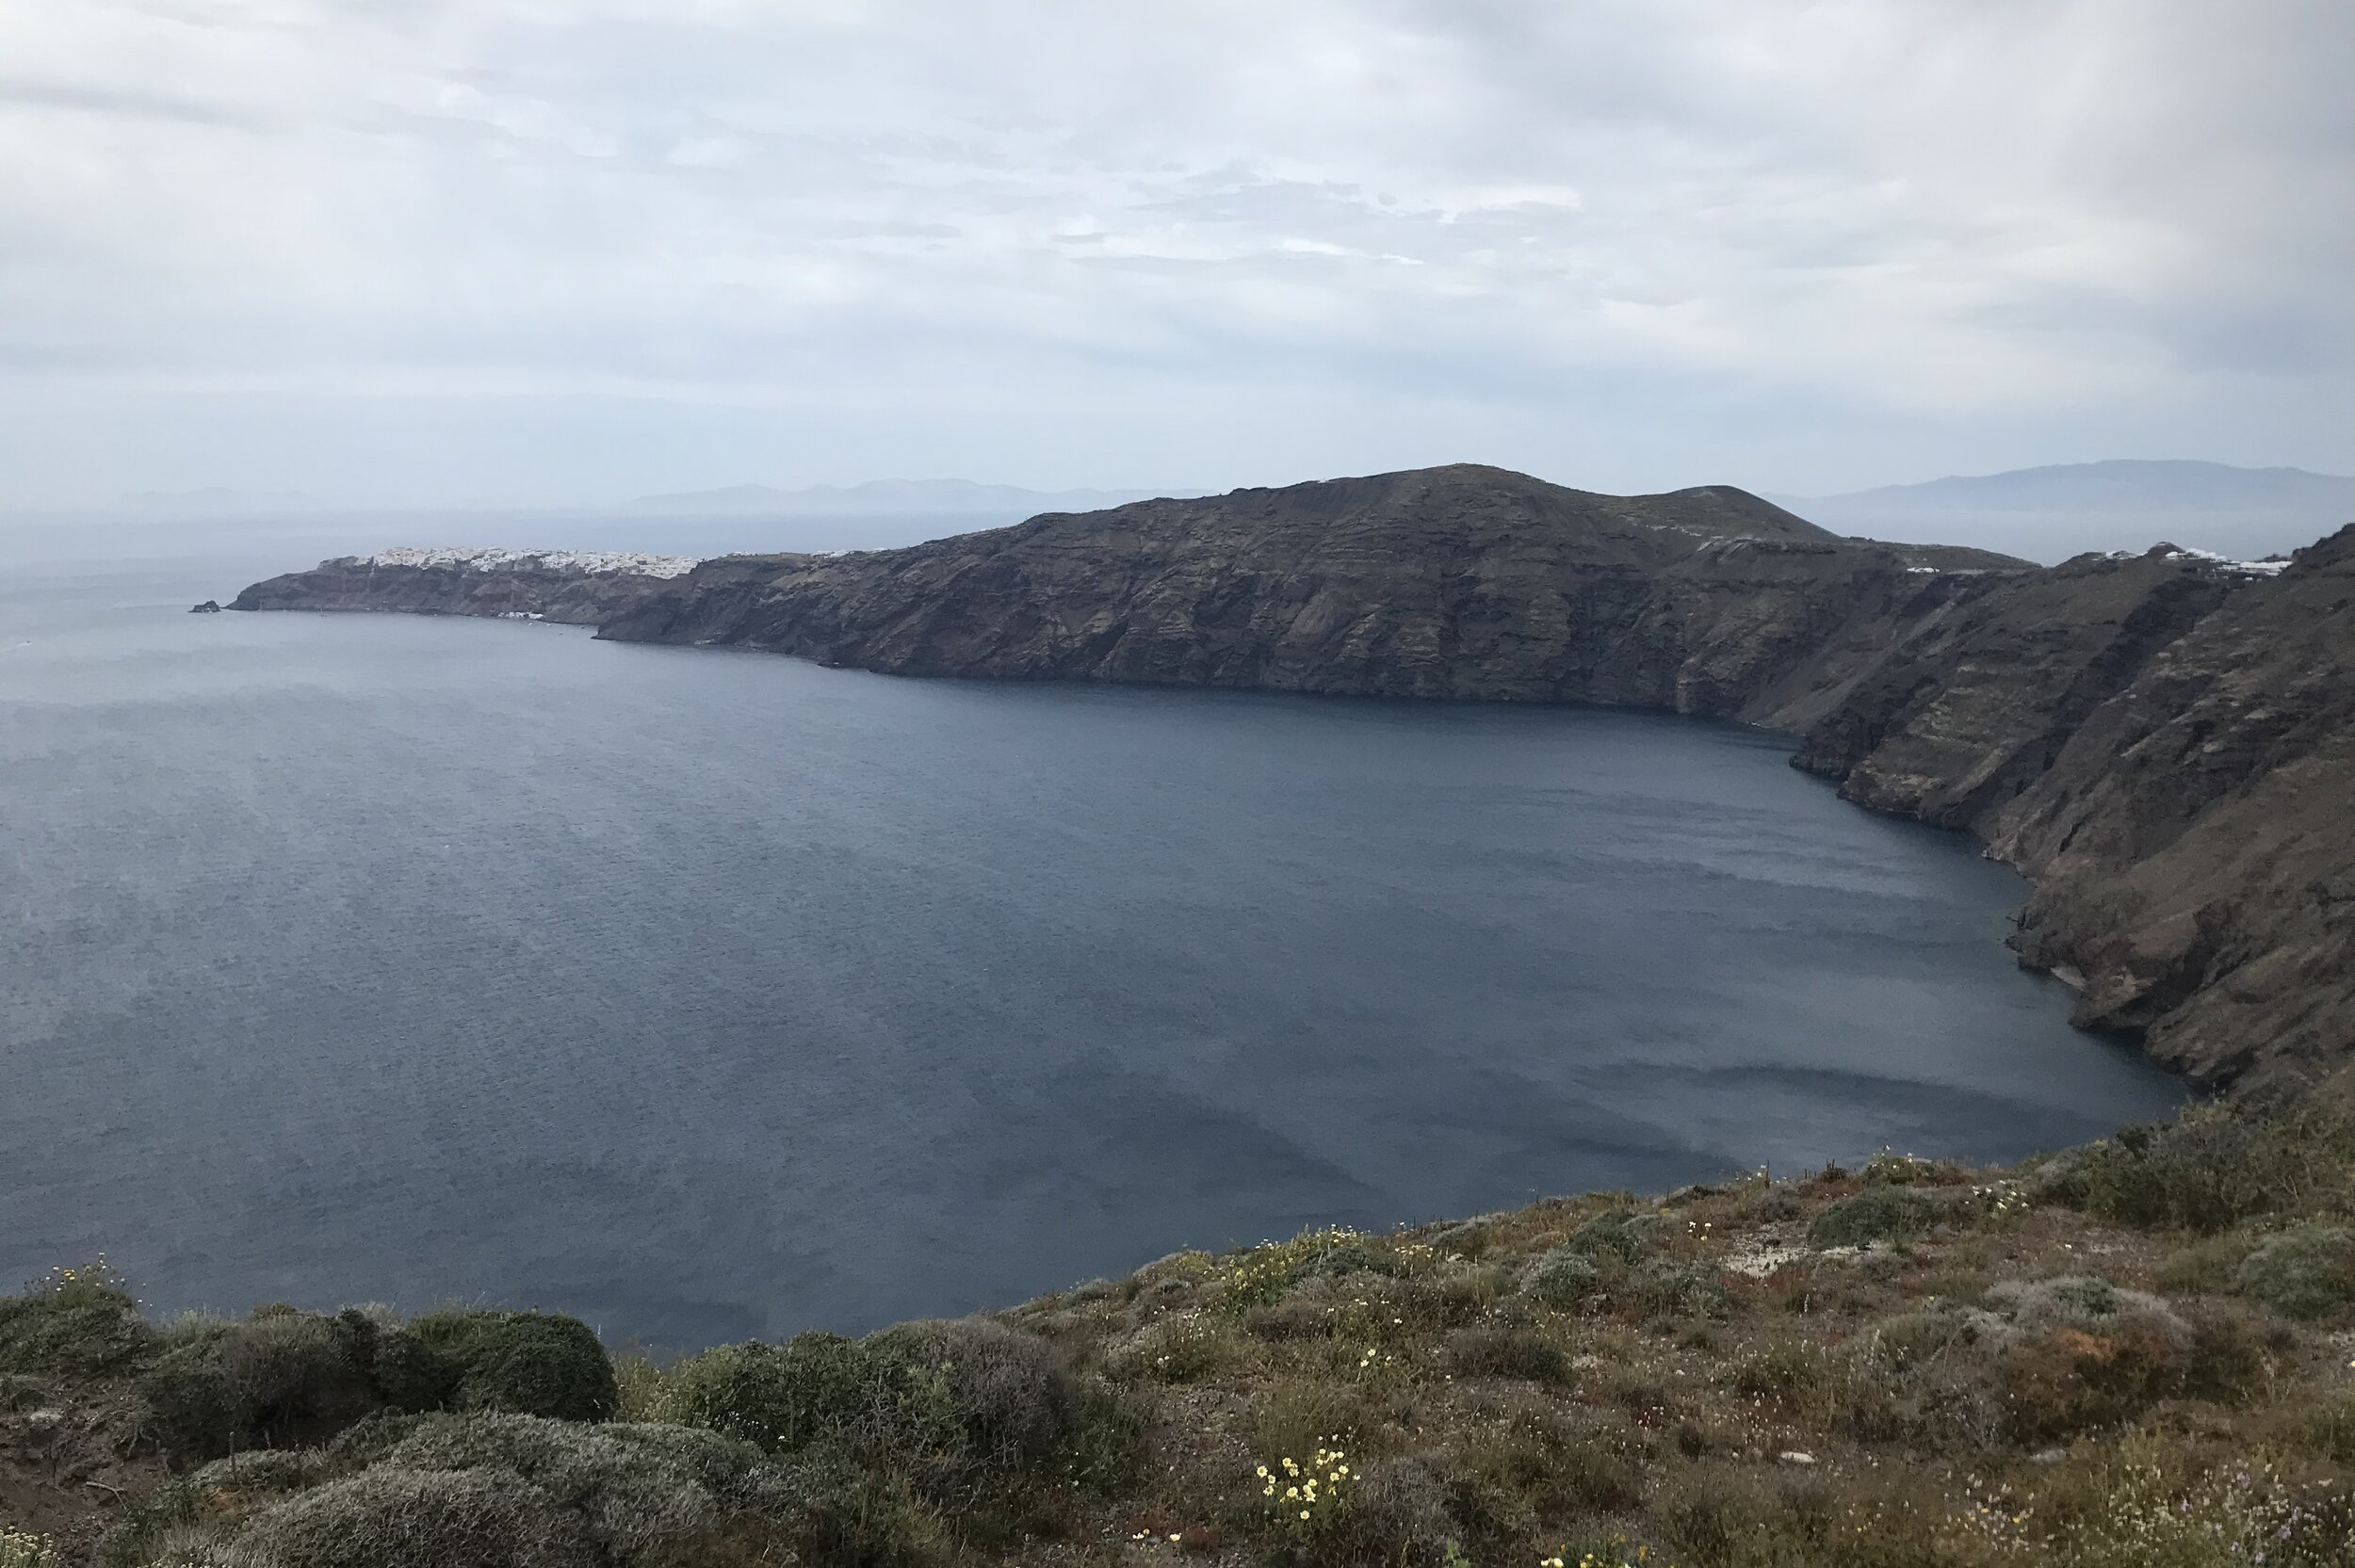 Views along the hiking trail from Fira to Oia